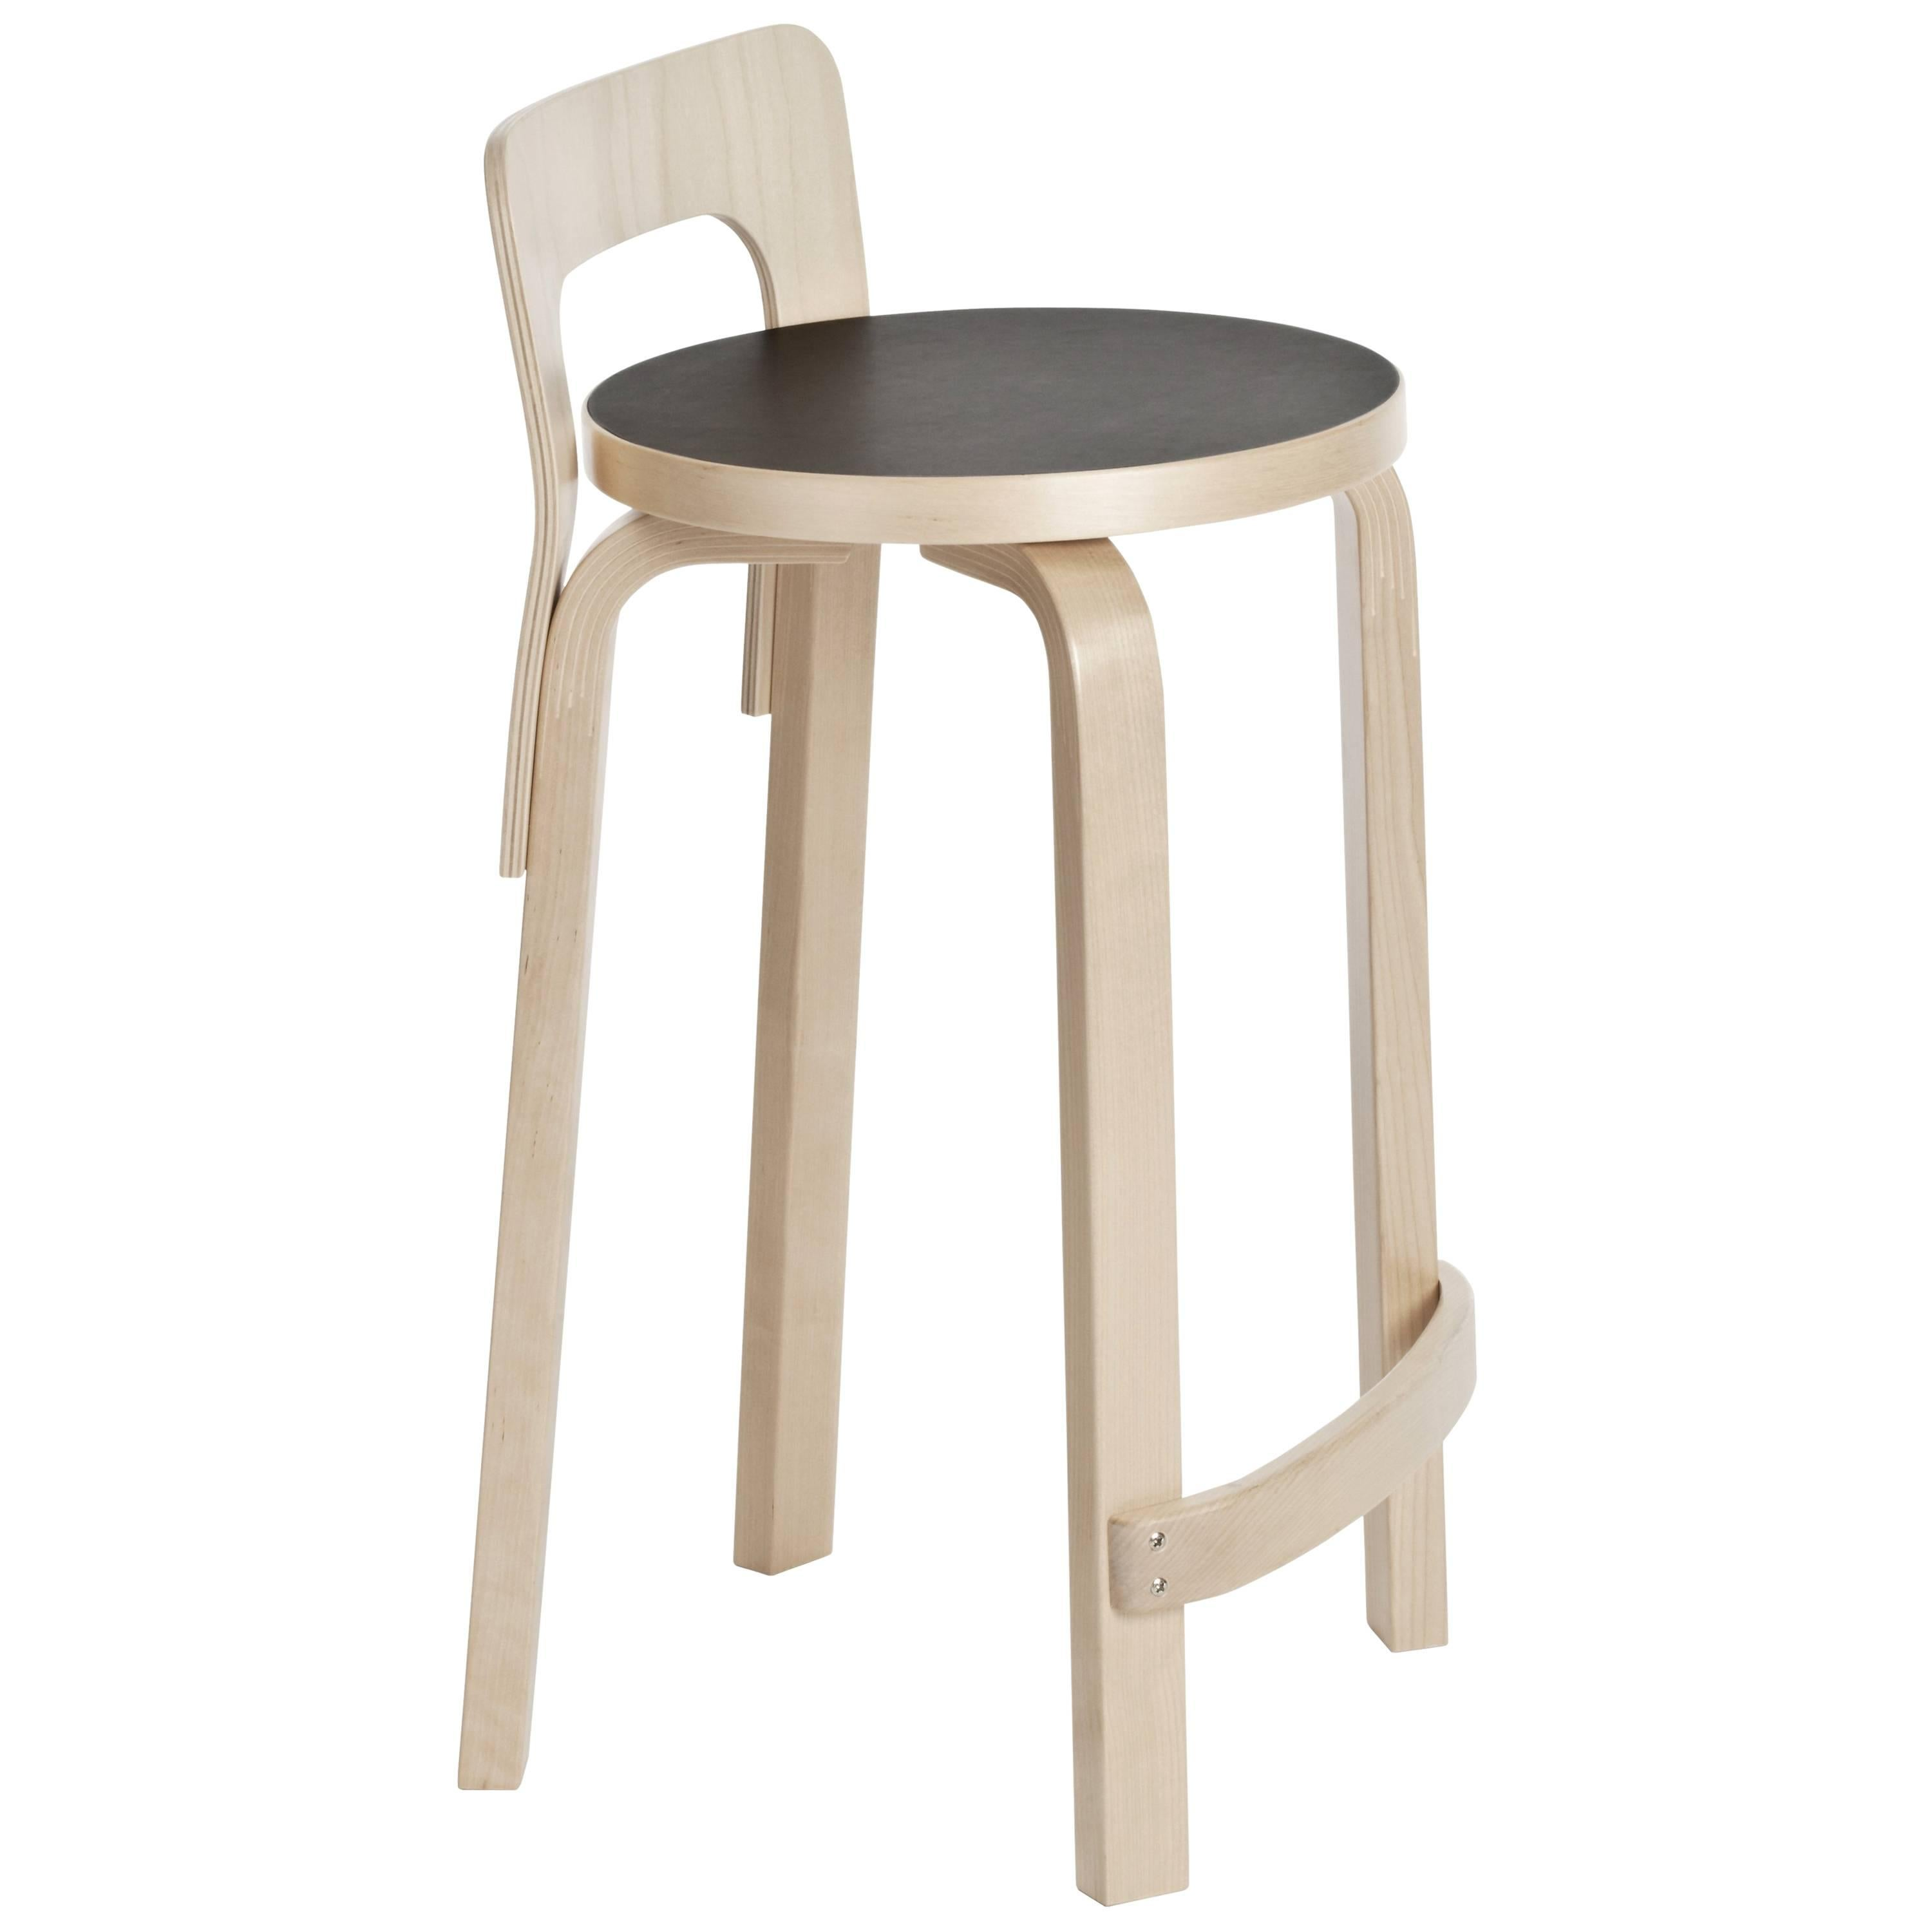 Authentic High Chair K65 In Birch With Linoleum Seat By Alvar Aalto And  Artek For Sale At 1stdibs